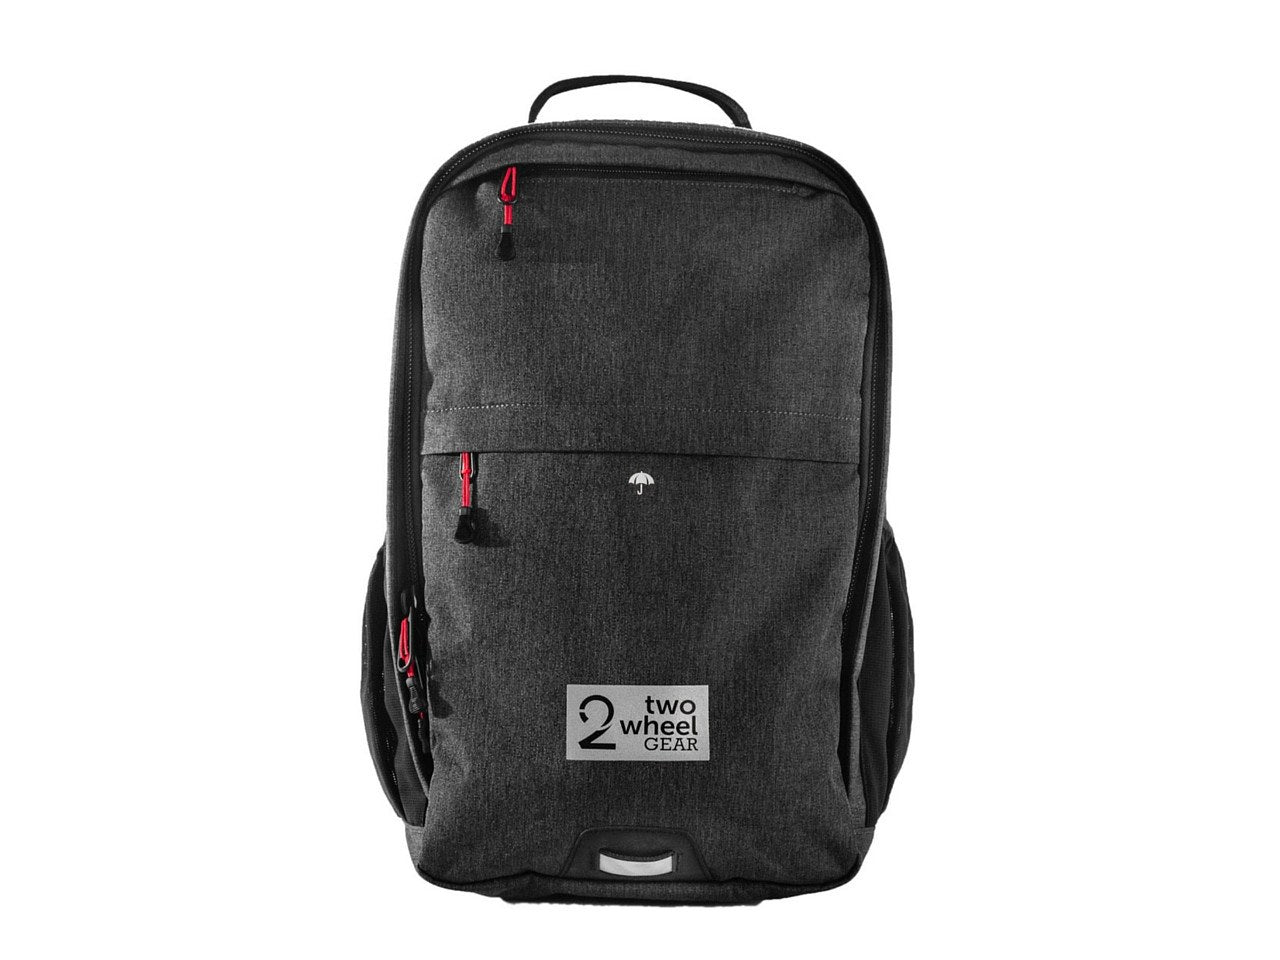 Pannier Backpack Convertible - Graphite Grey - Bags - Two Wheel Gear - Front